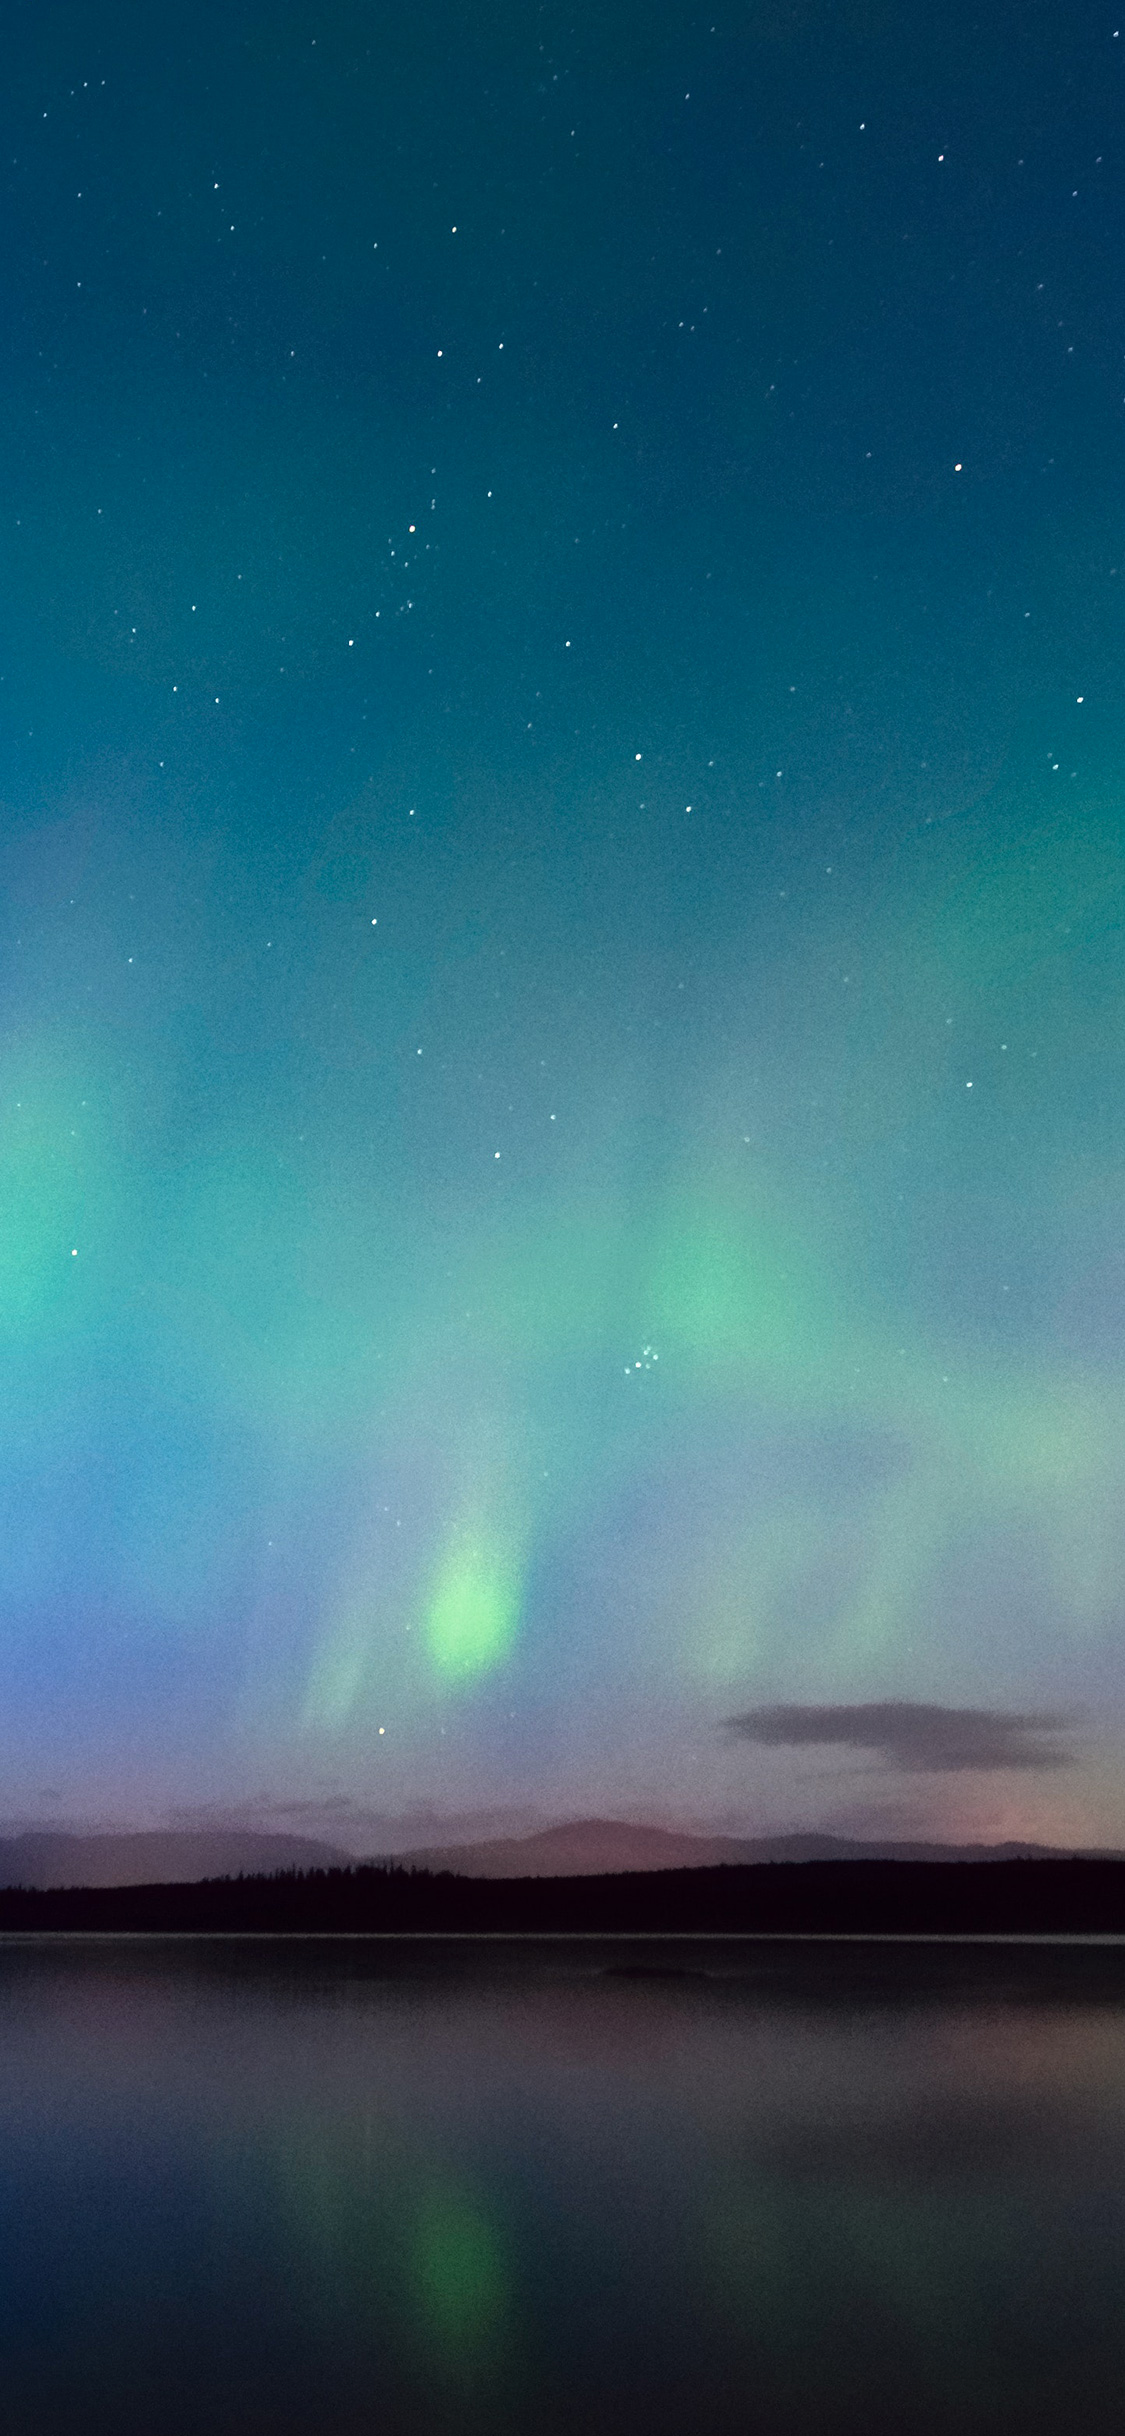 iPhone wallpaper aurora 2 Les 3Wallpapers iPhone du jour (19/01/2018)